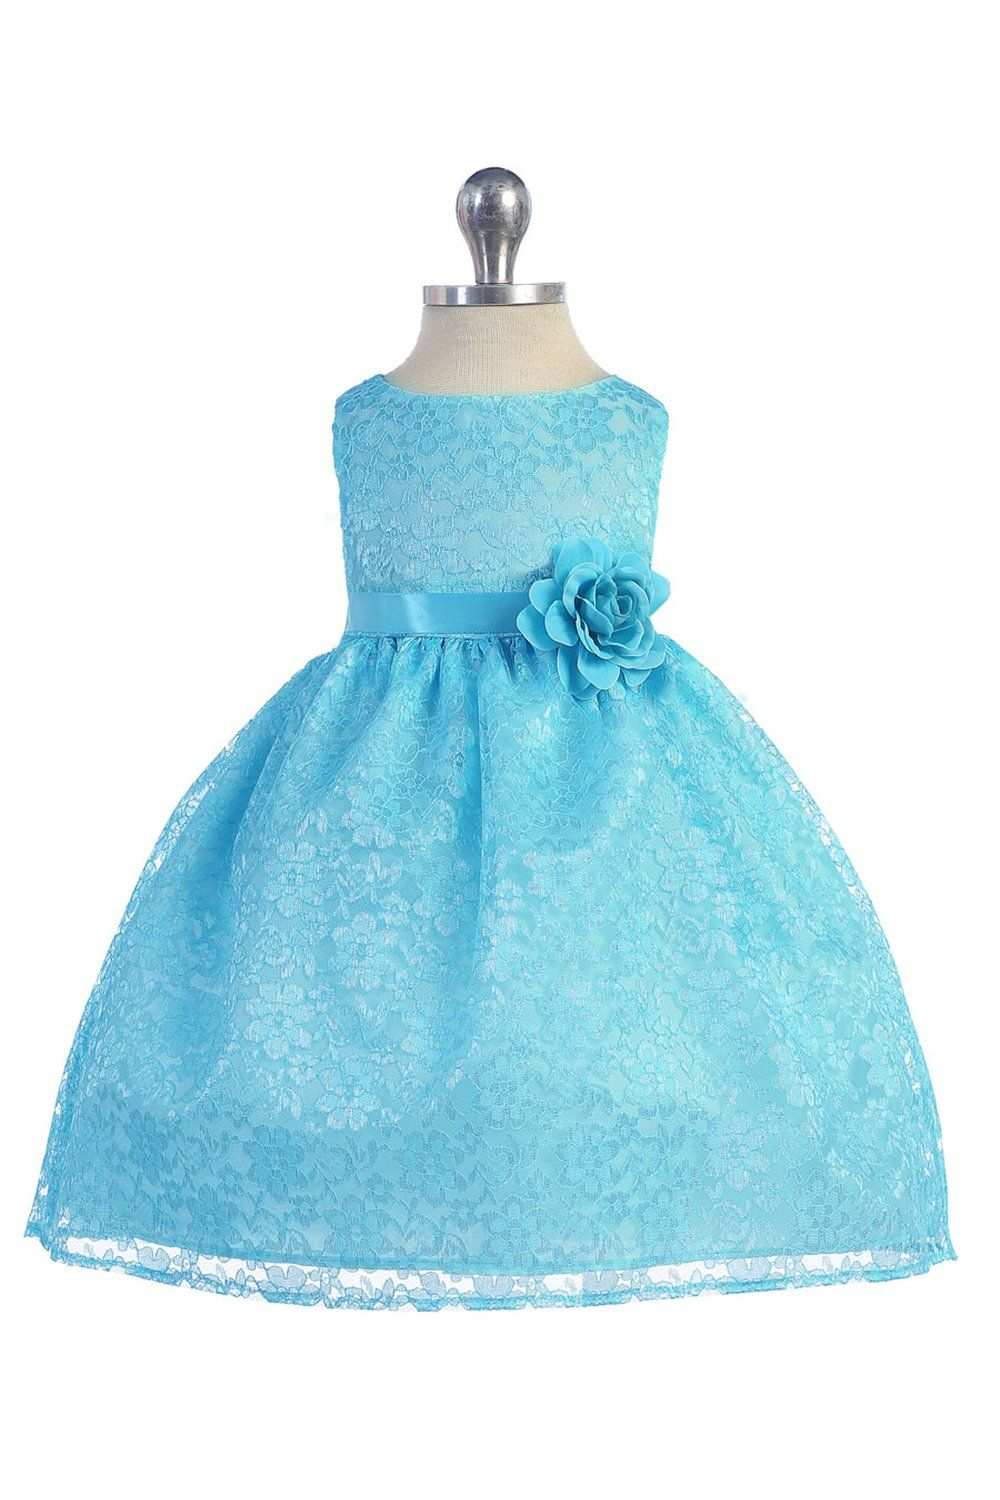 Turquoise Lovely Floral Lace Baby Girl Dress | Turquoise, Baby girl ...